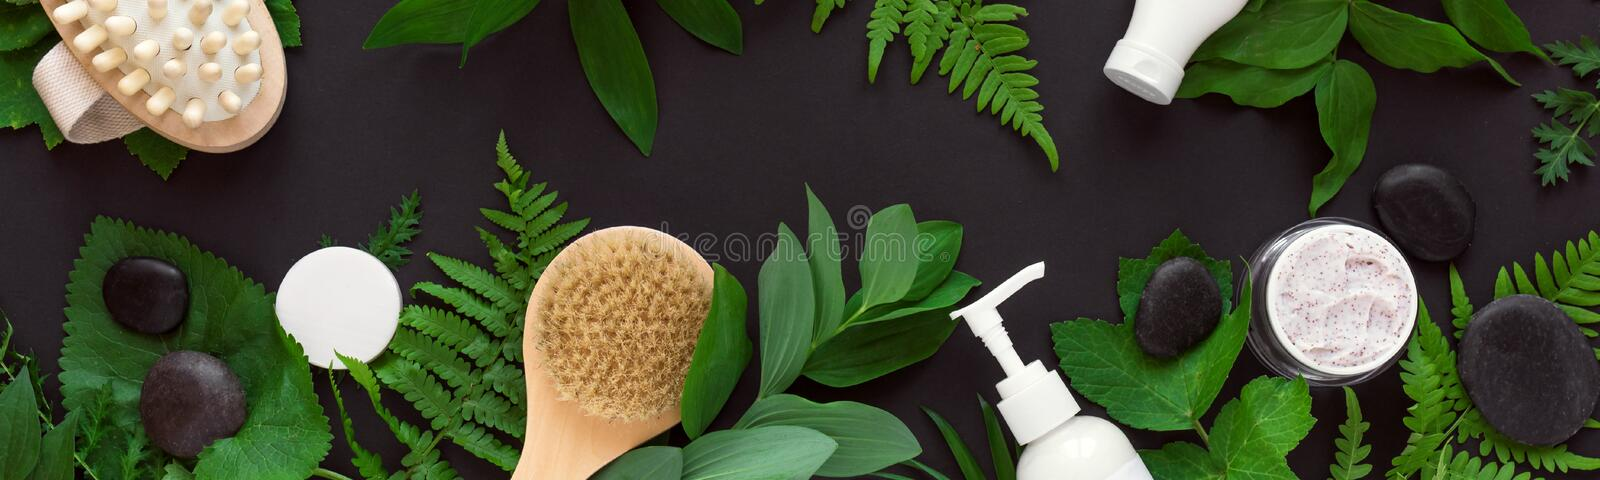 Natural cosmetics and leaves. Natural cosmetics and green leaves on black background, banner. Natural organic skincare, bio research and healthy lifestyle royalty free stock photo